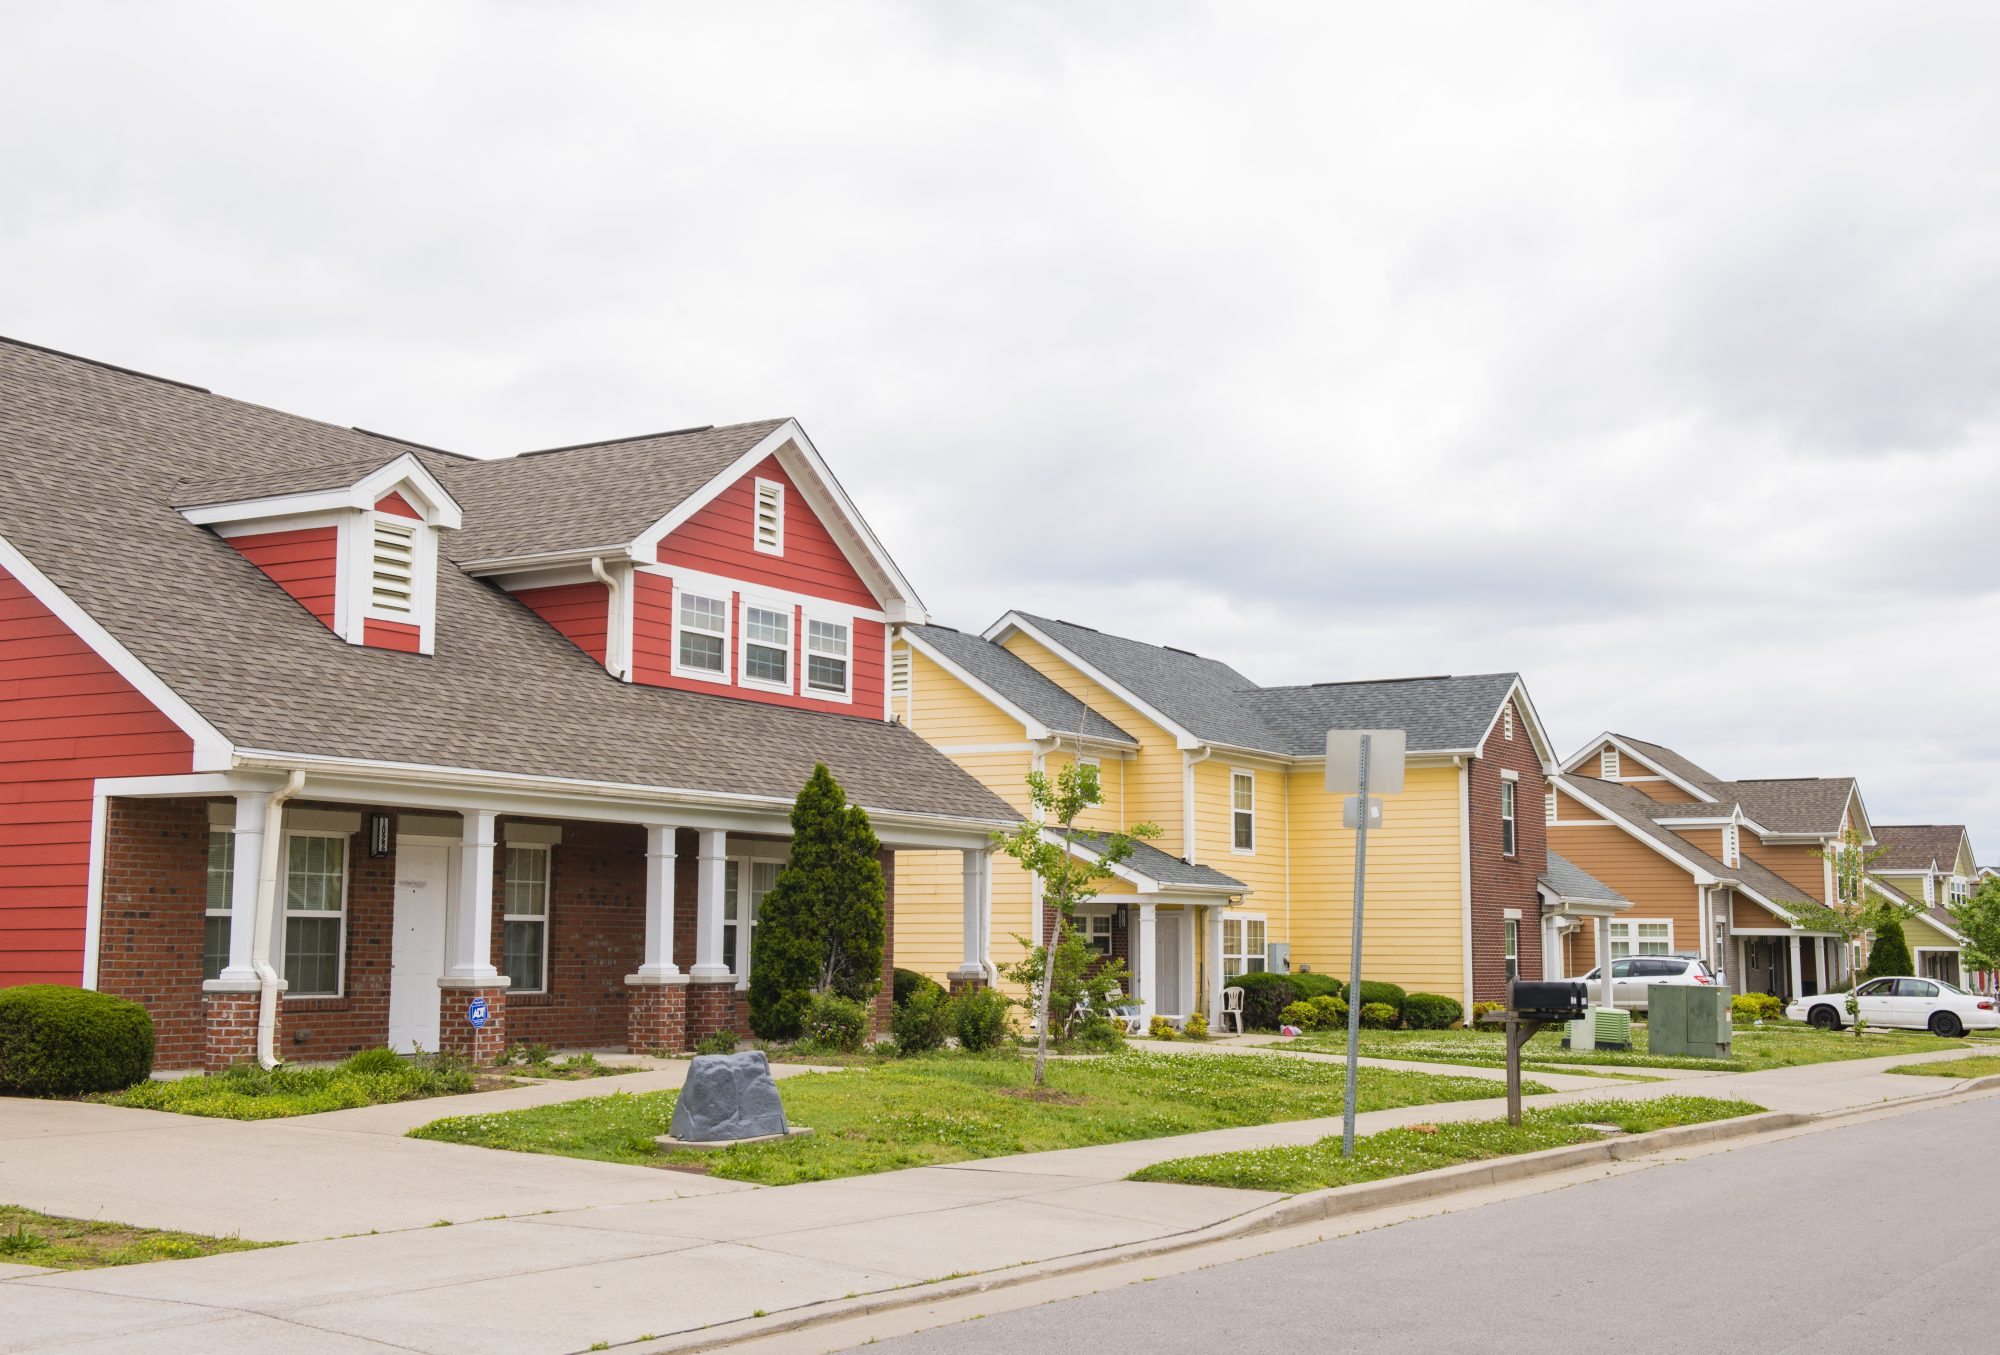 Nashville Homes in a Row